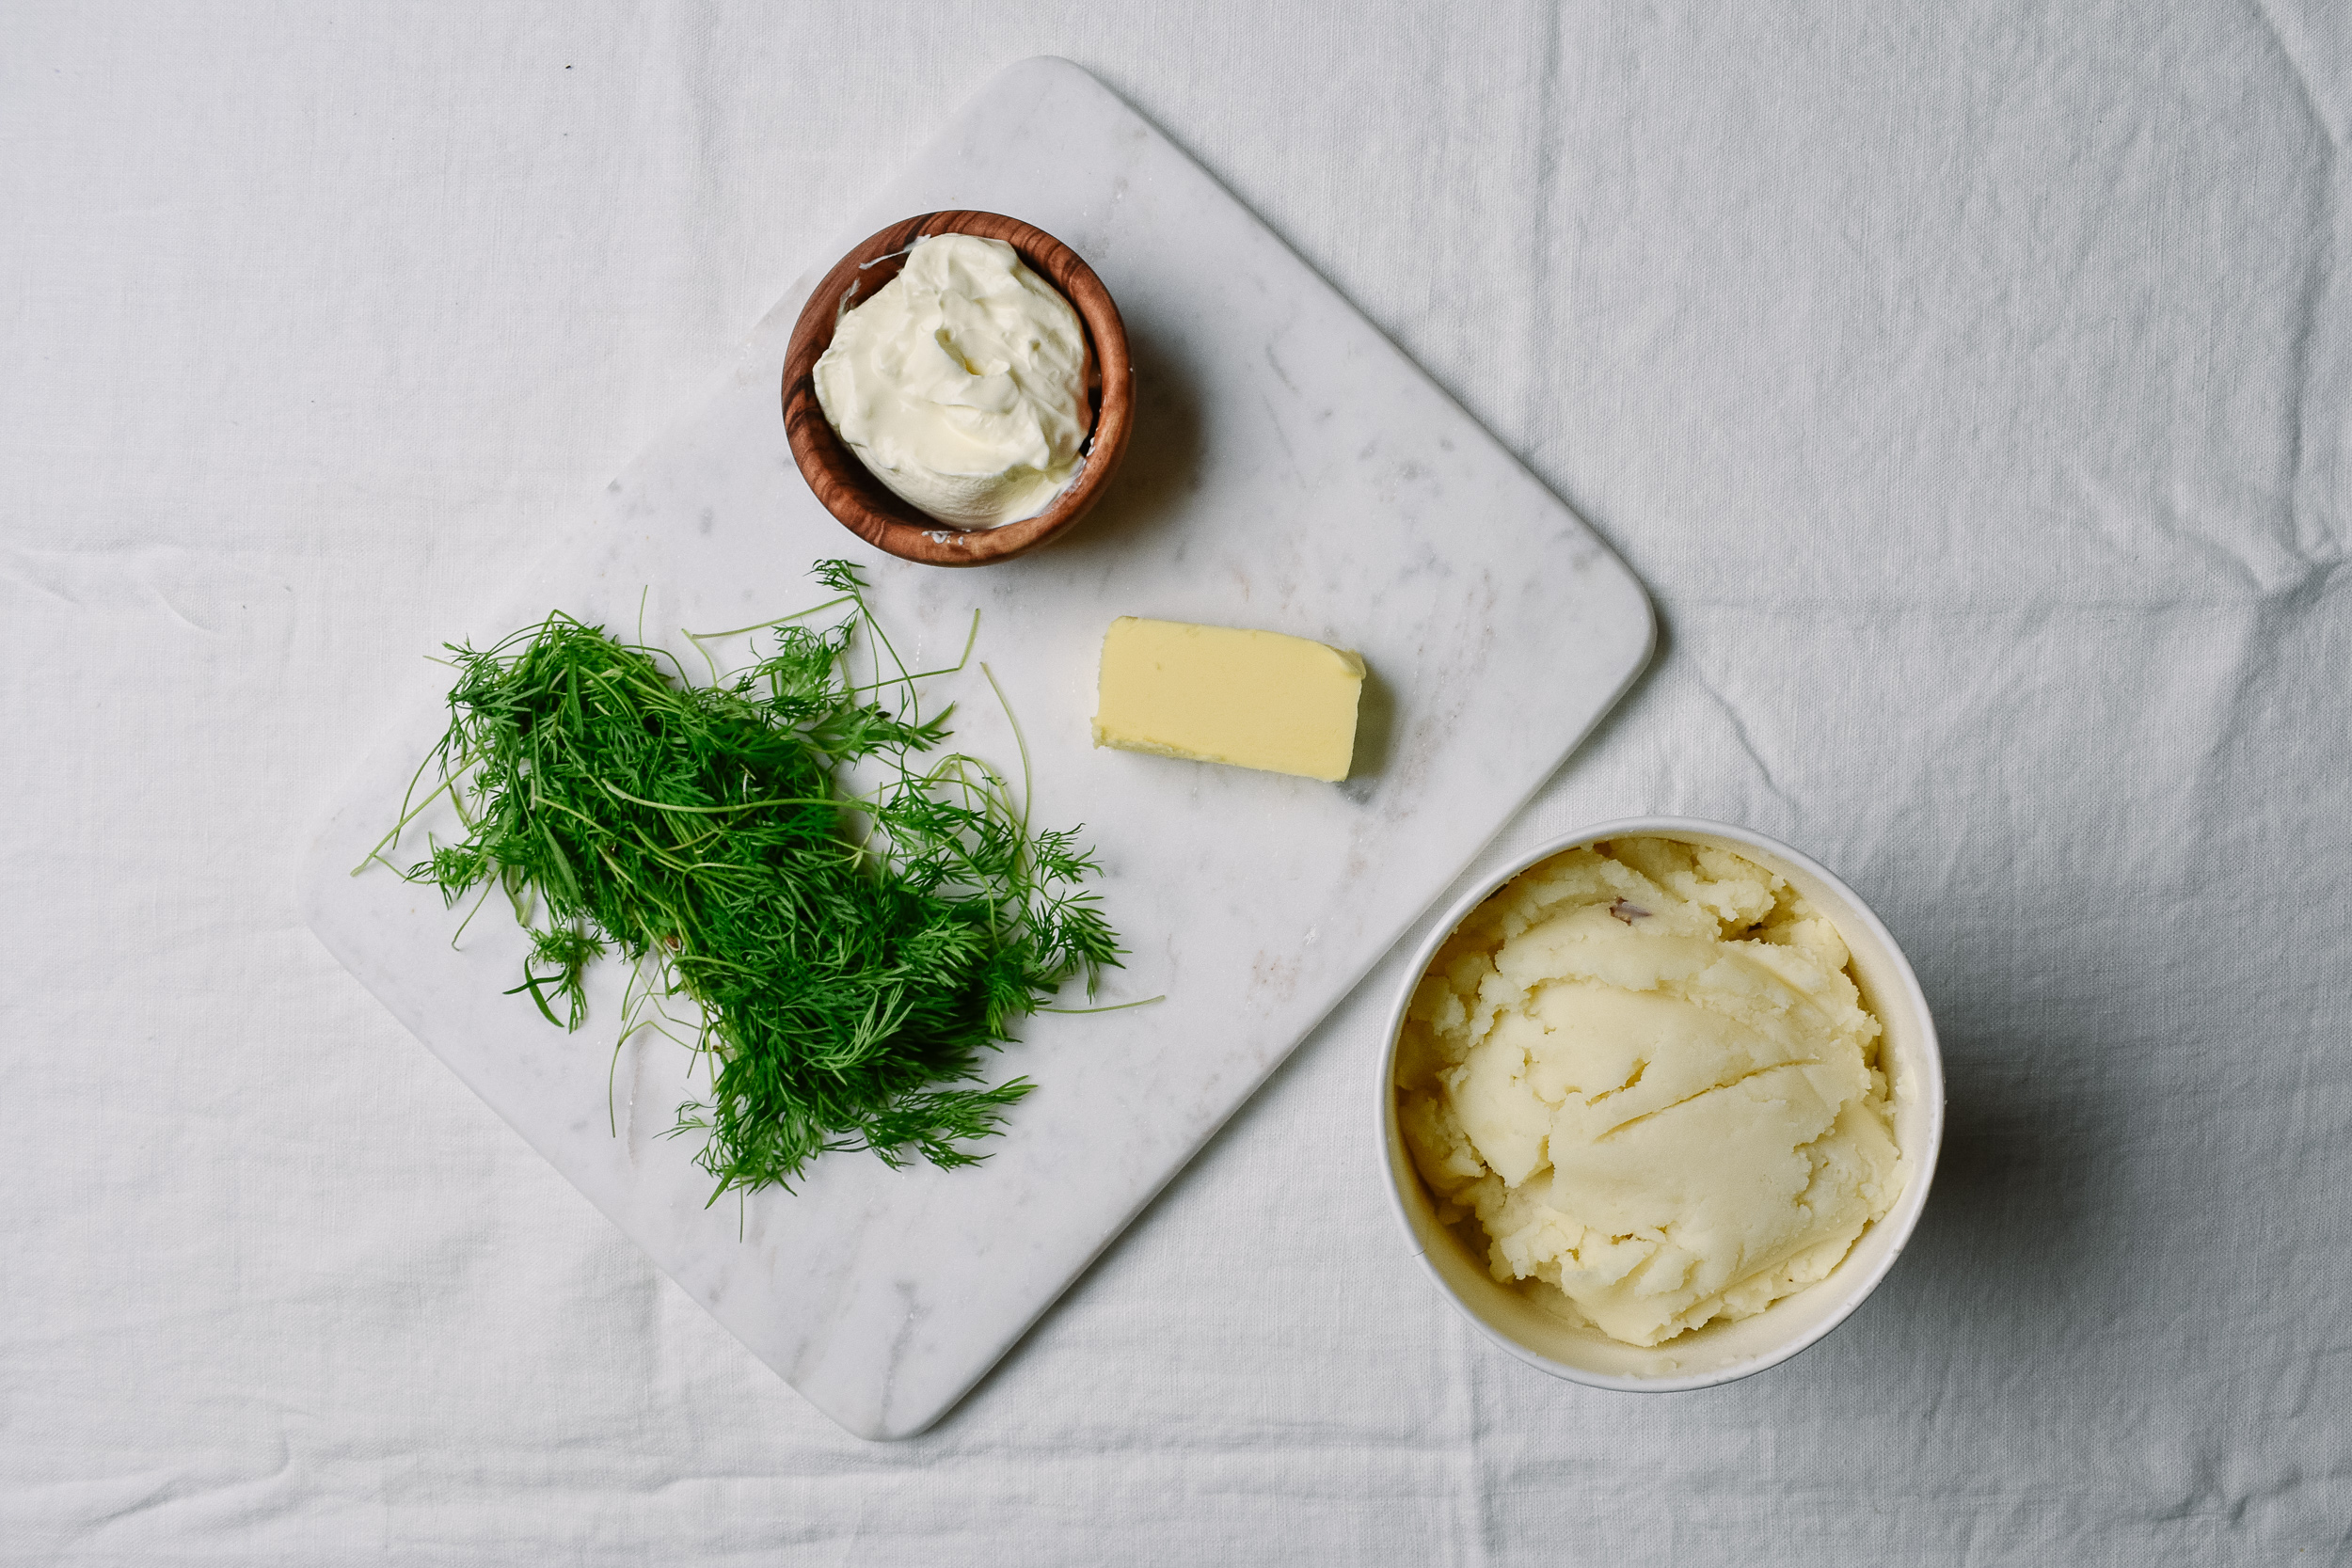 Mashed potatoes with dill and sour cream